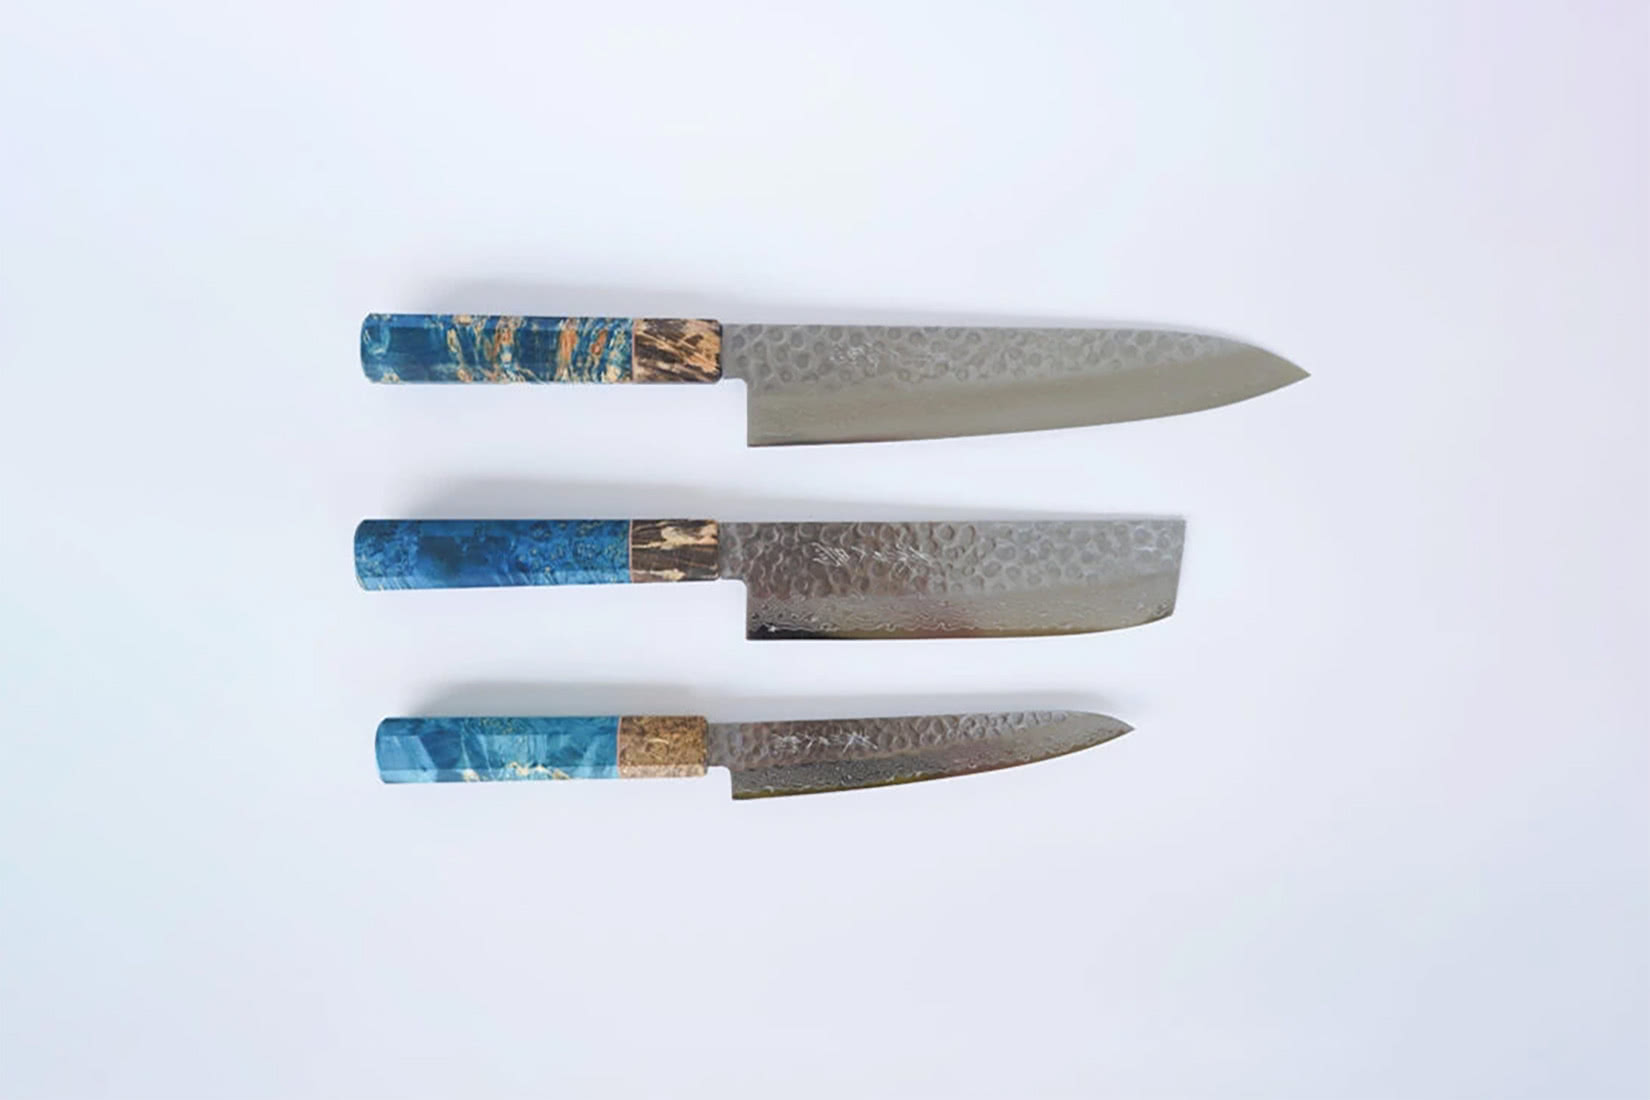 best kitchen knife japana review - Luxe Digital